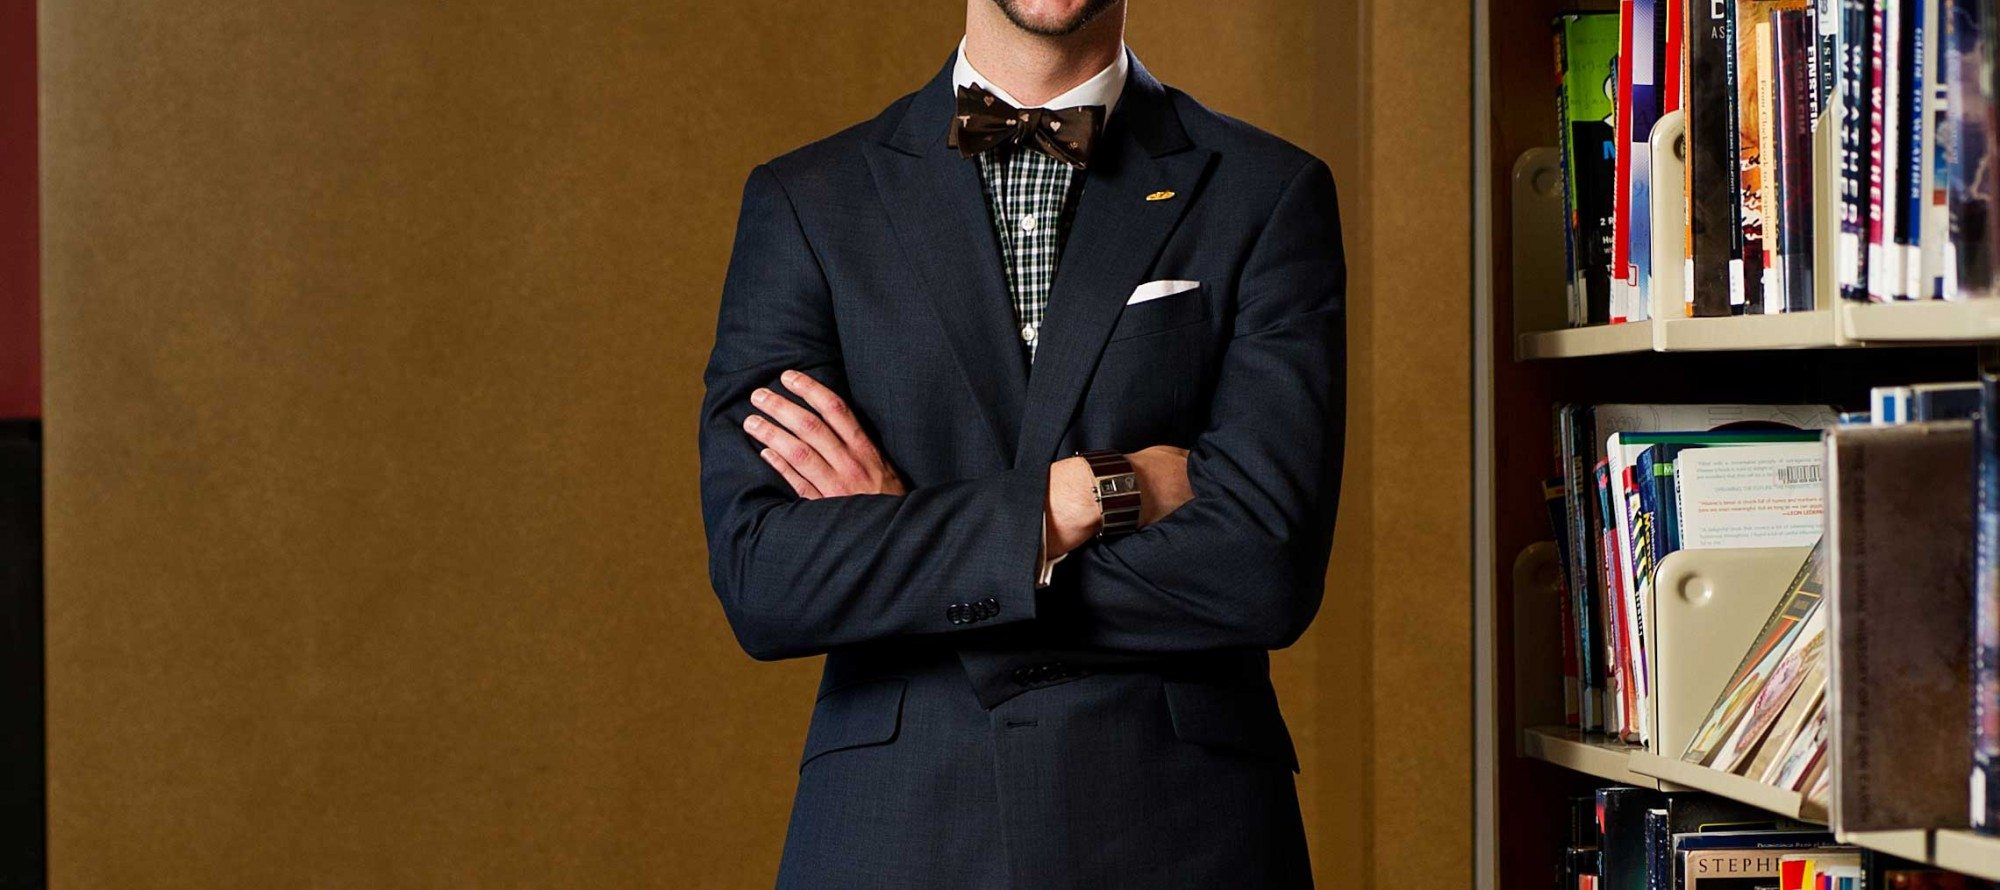 MY LOOK: Talking personal style with dapper aspiring librarian Kevin Wollenschlager